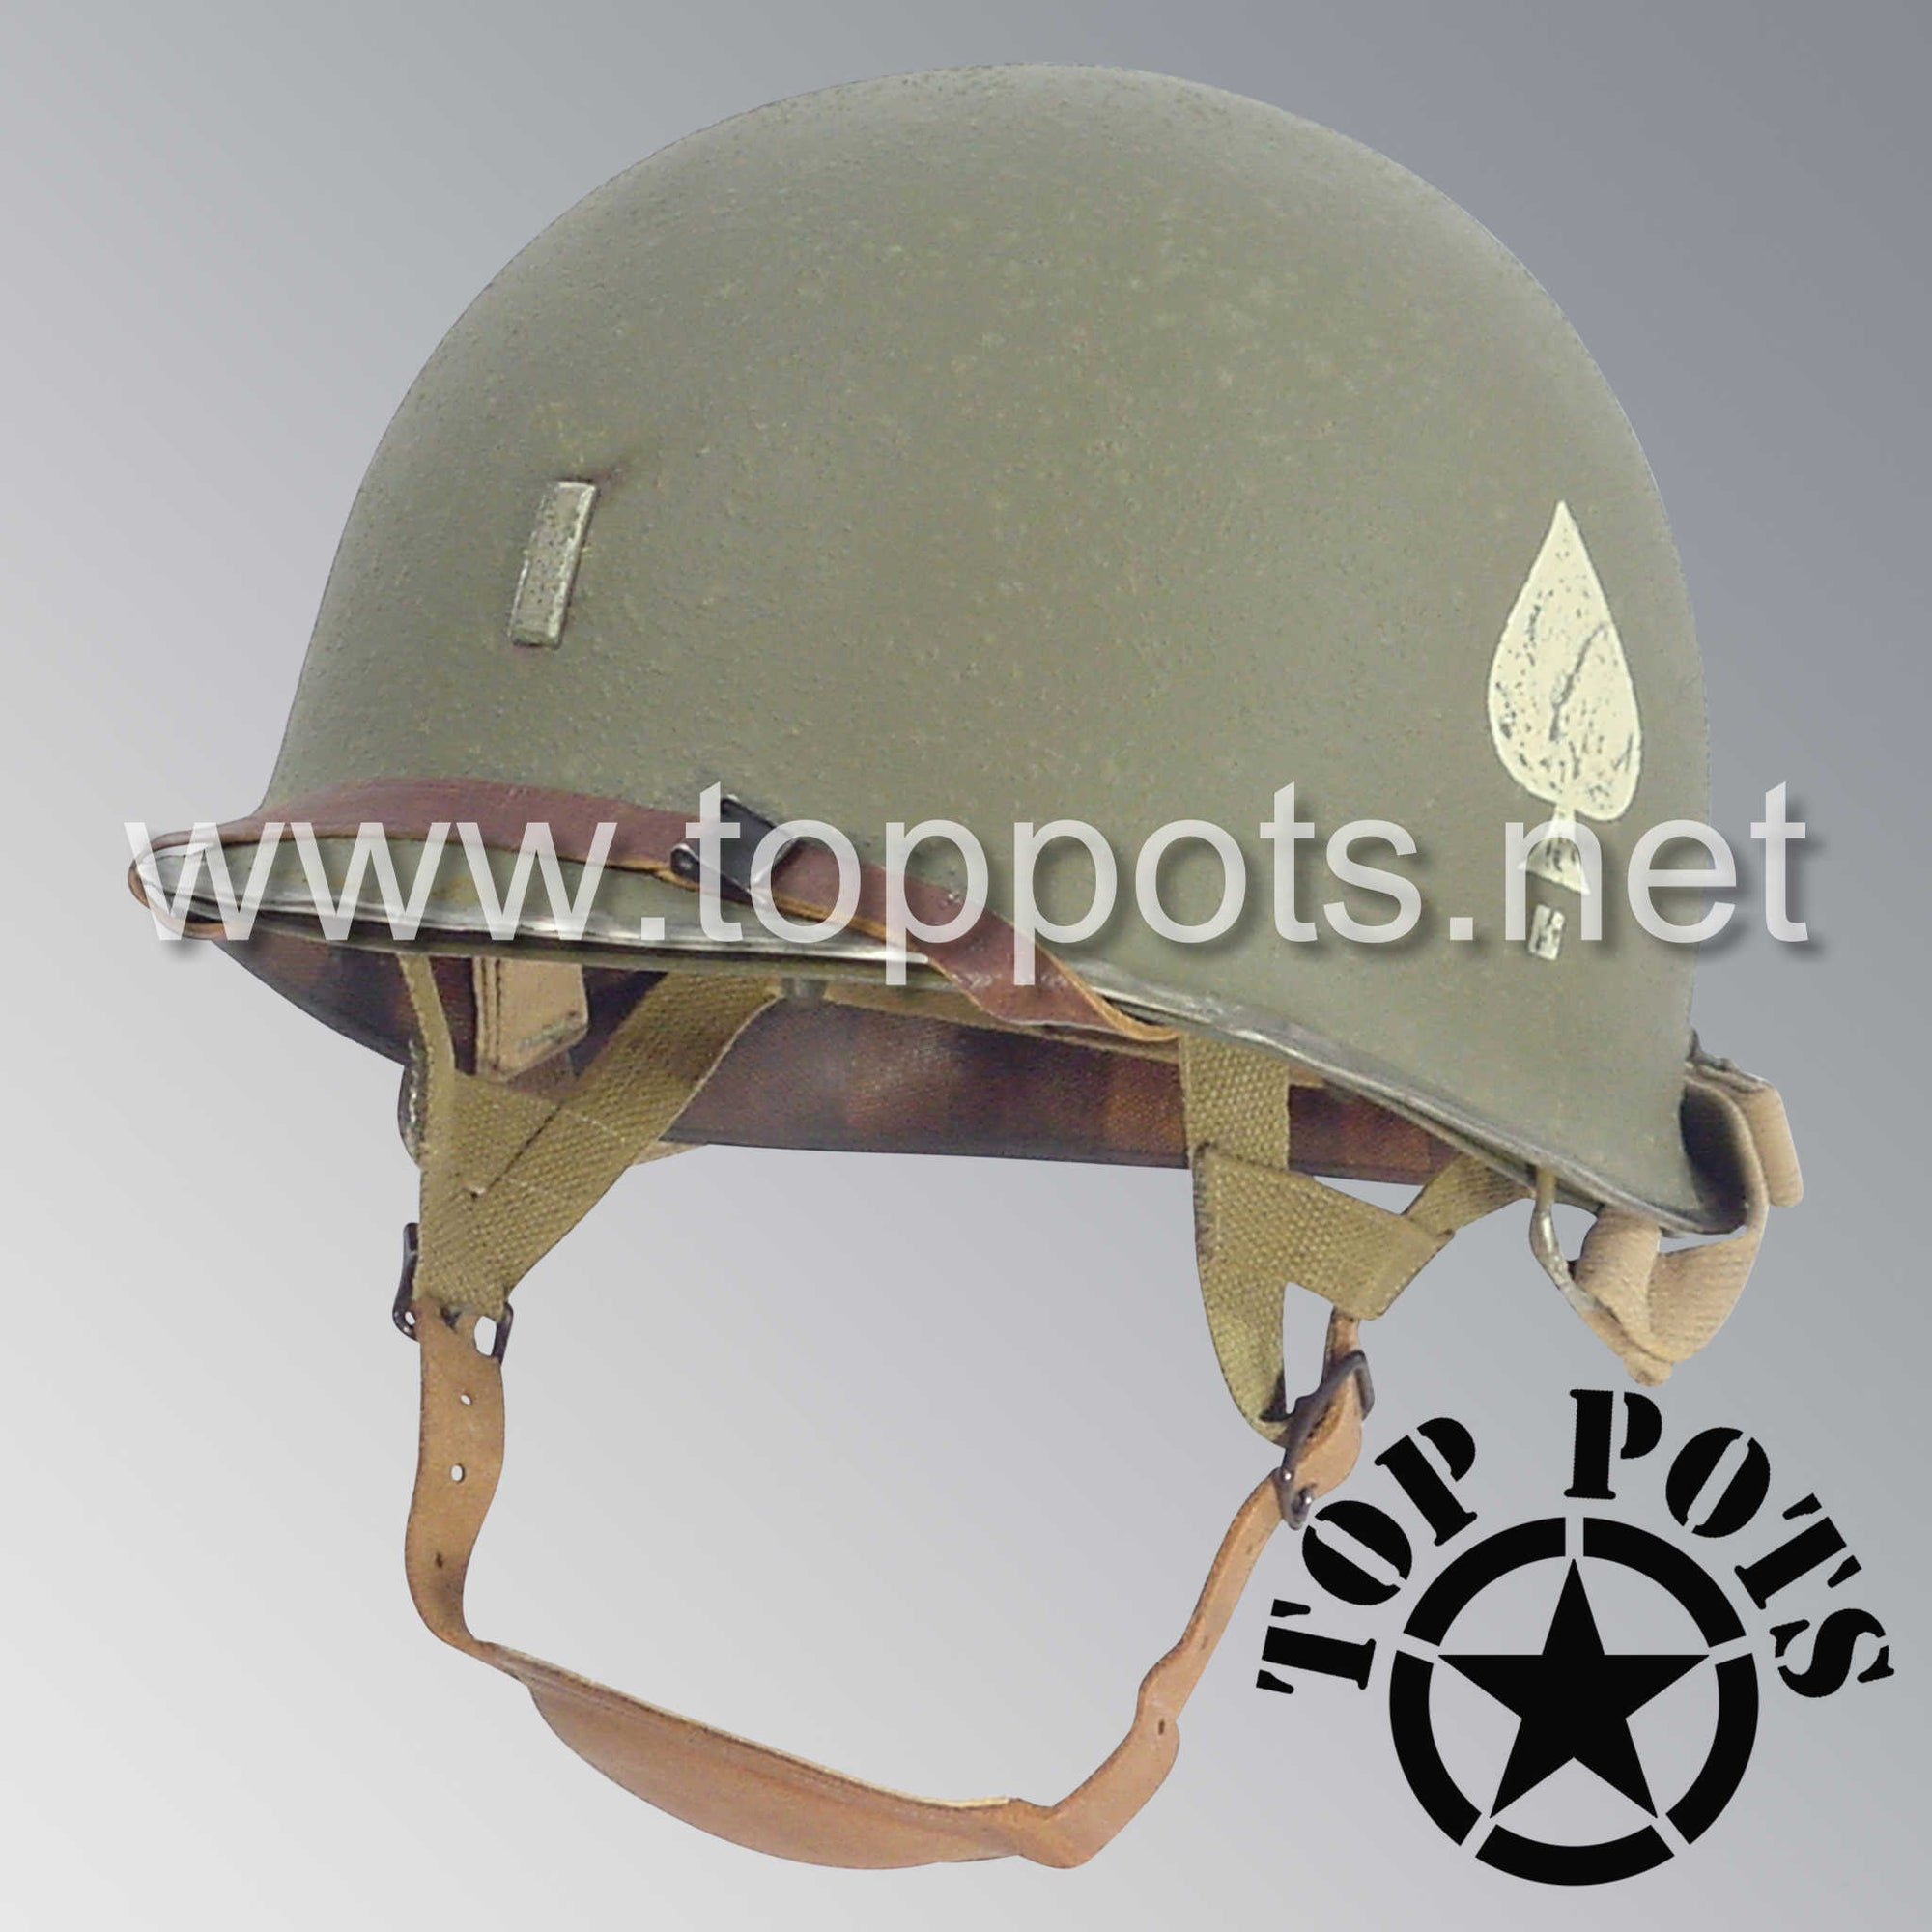 Image 1 of WWII US Army Aged Original M2 Paratrooper Airborne Helmet D Bale Shell and Liner with 506th PIR 2nd Battalion Officer Metal Lieutenant Rank Emblem